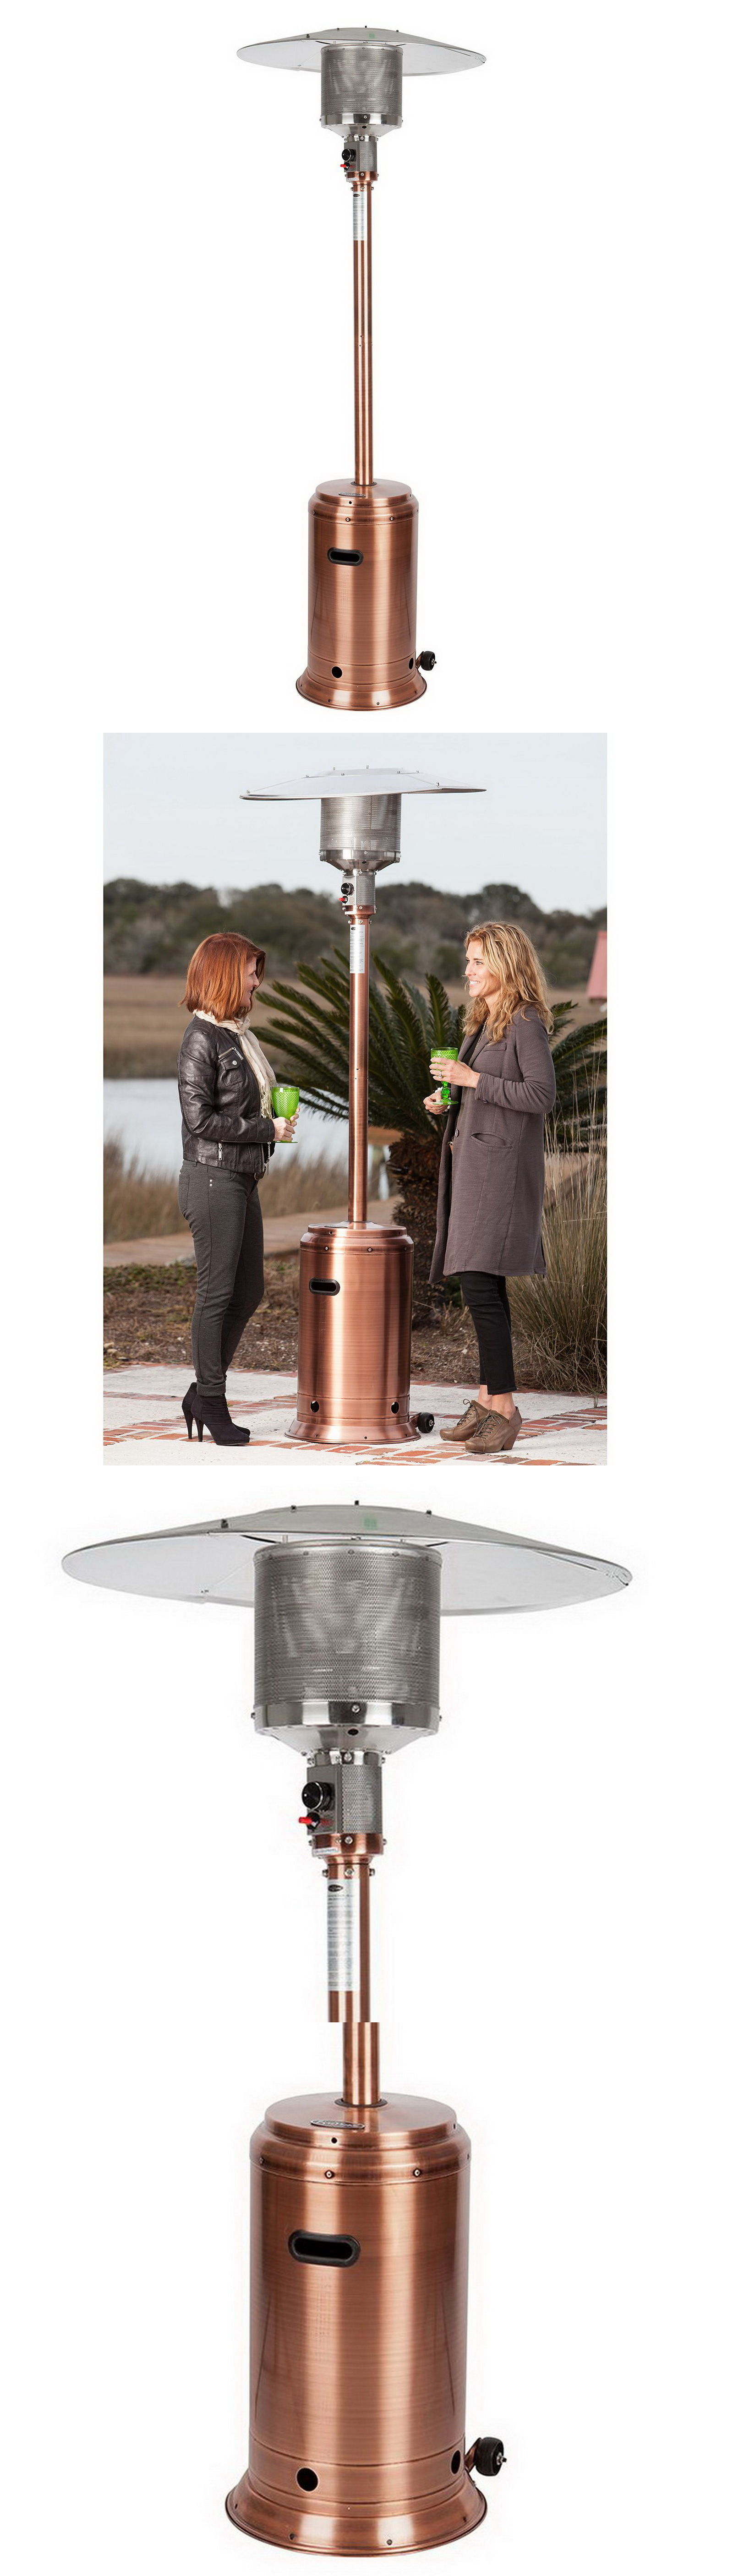 Patio heaters new outdoor patio heater copper finish